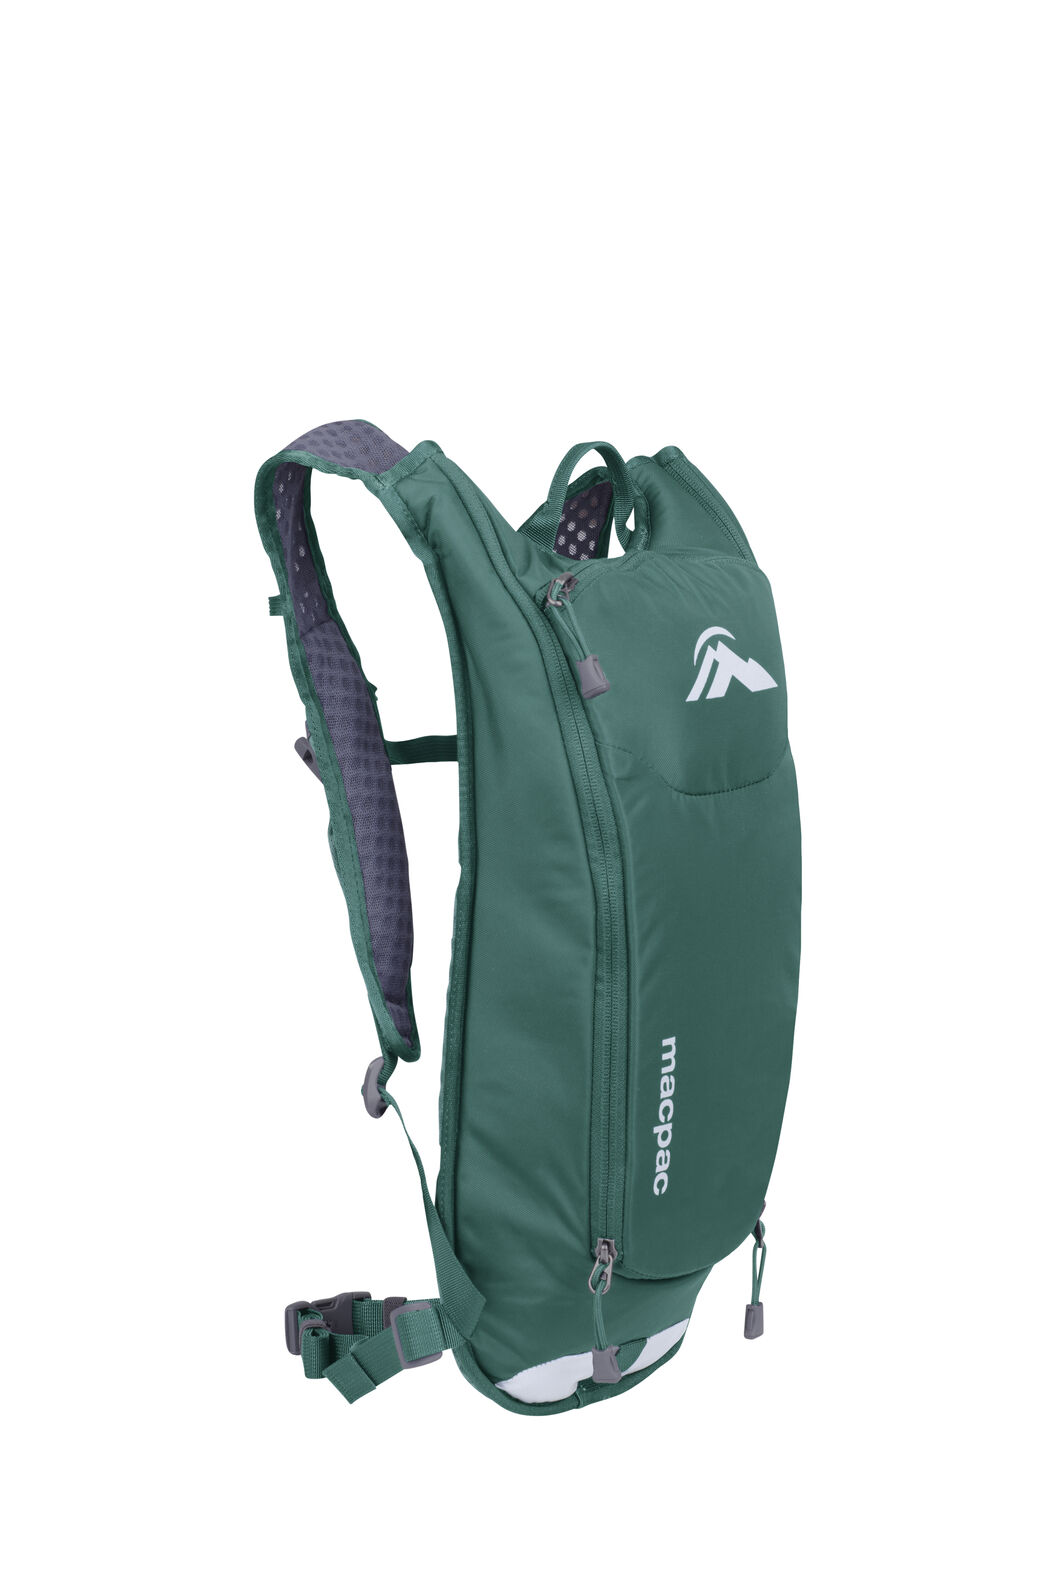 Macpac Amp H2O 2L Hydration Pack, Bayberry, hi-res